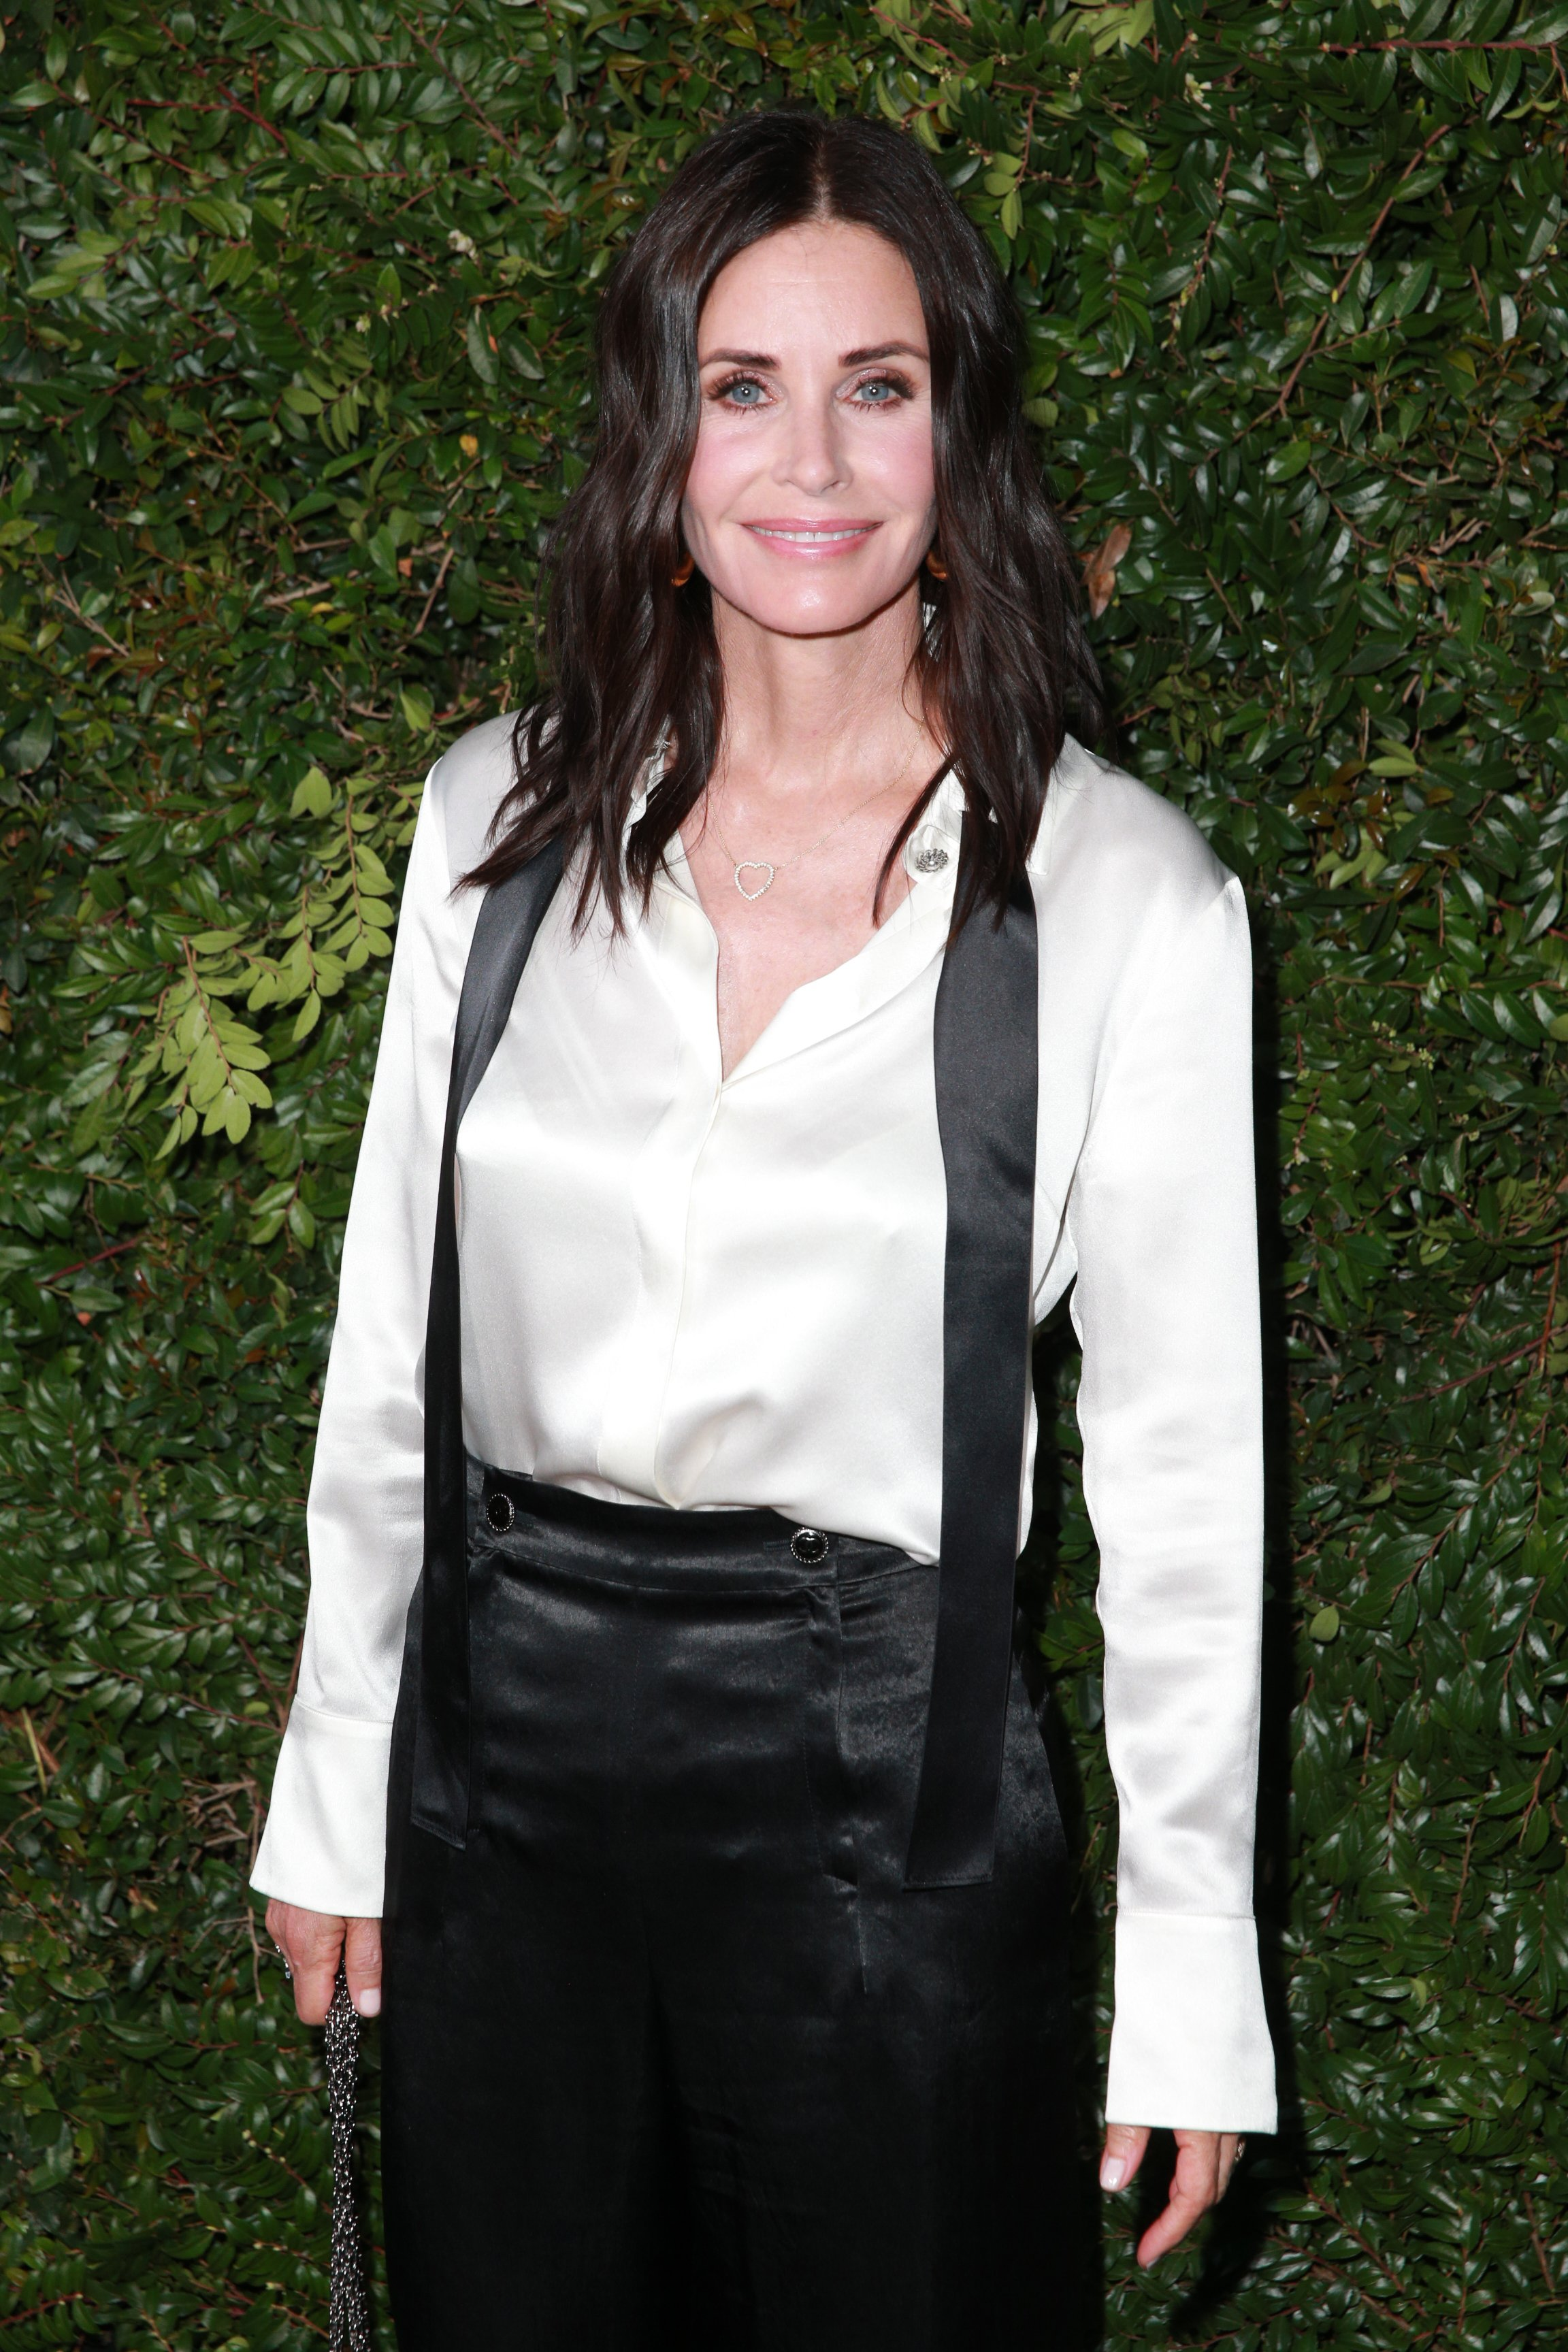 Courteney Cox attends CHANEL Dinner Celebrating Our Majestic Oceans in Malibu, California on June 2, 2018 | Photo: Getty Images